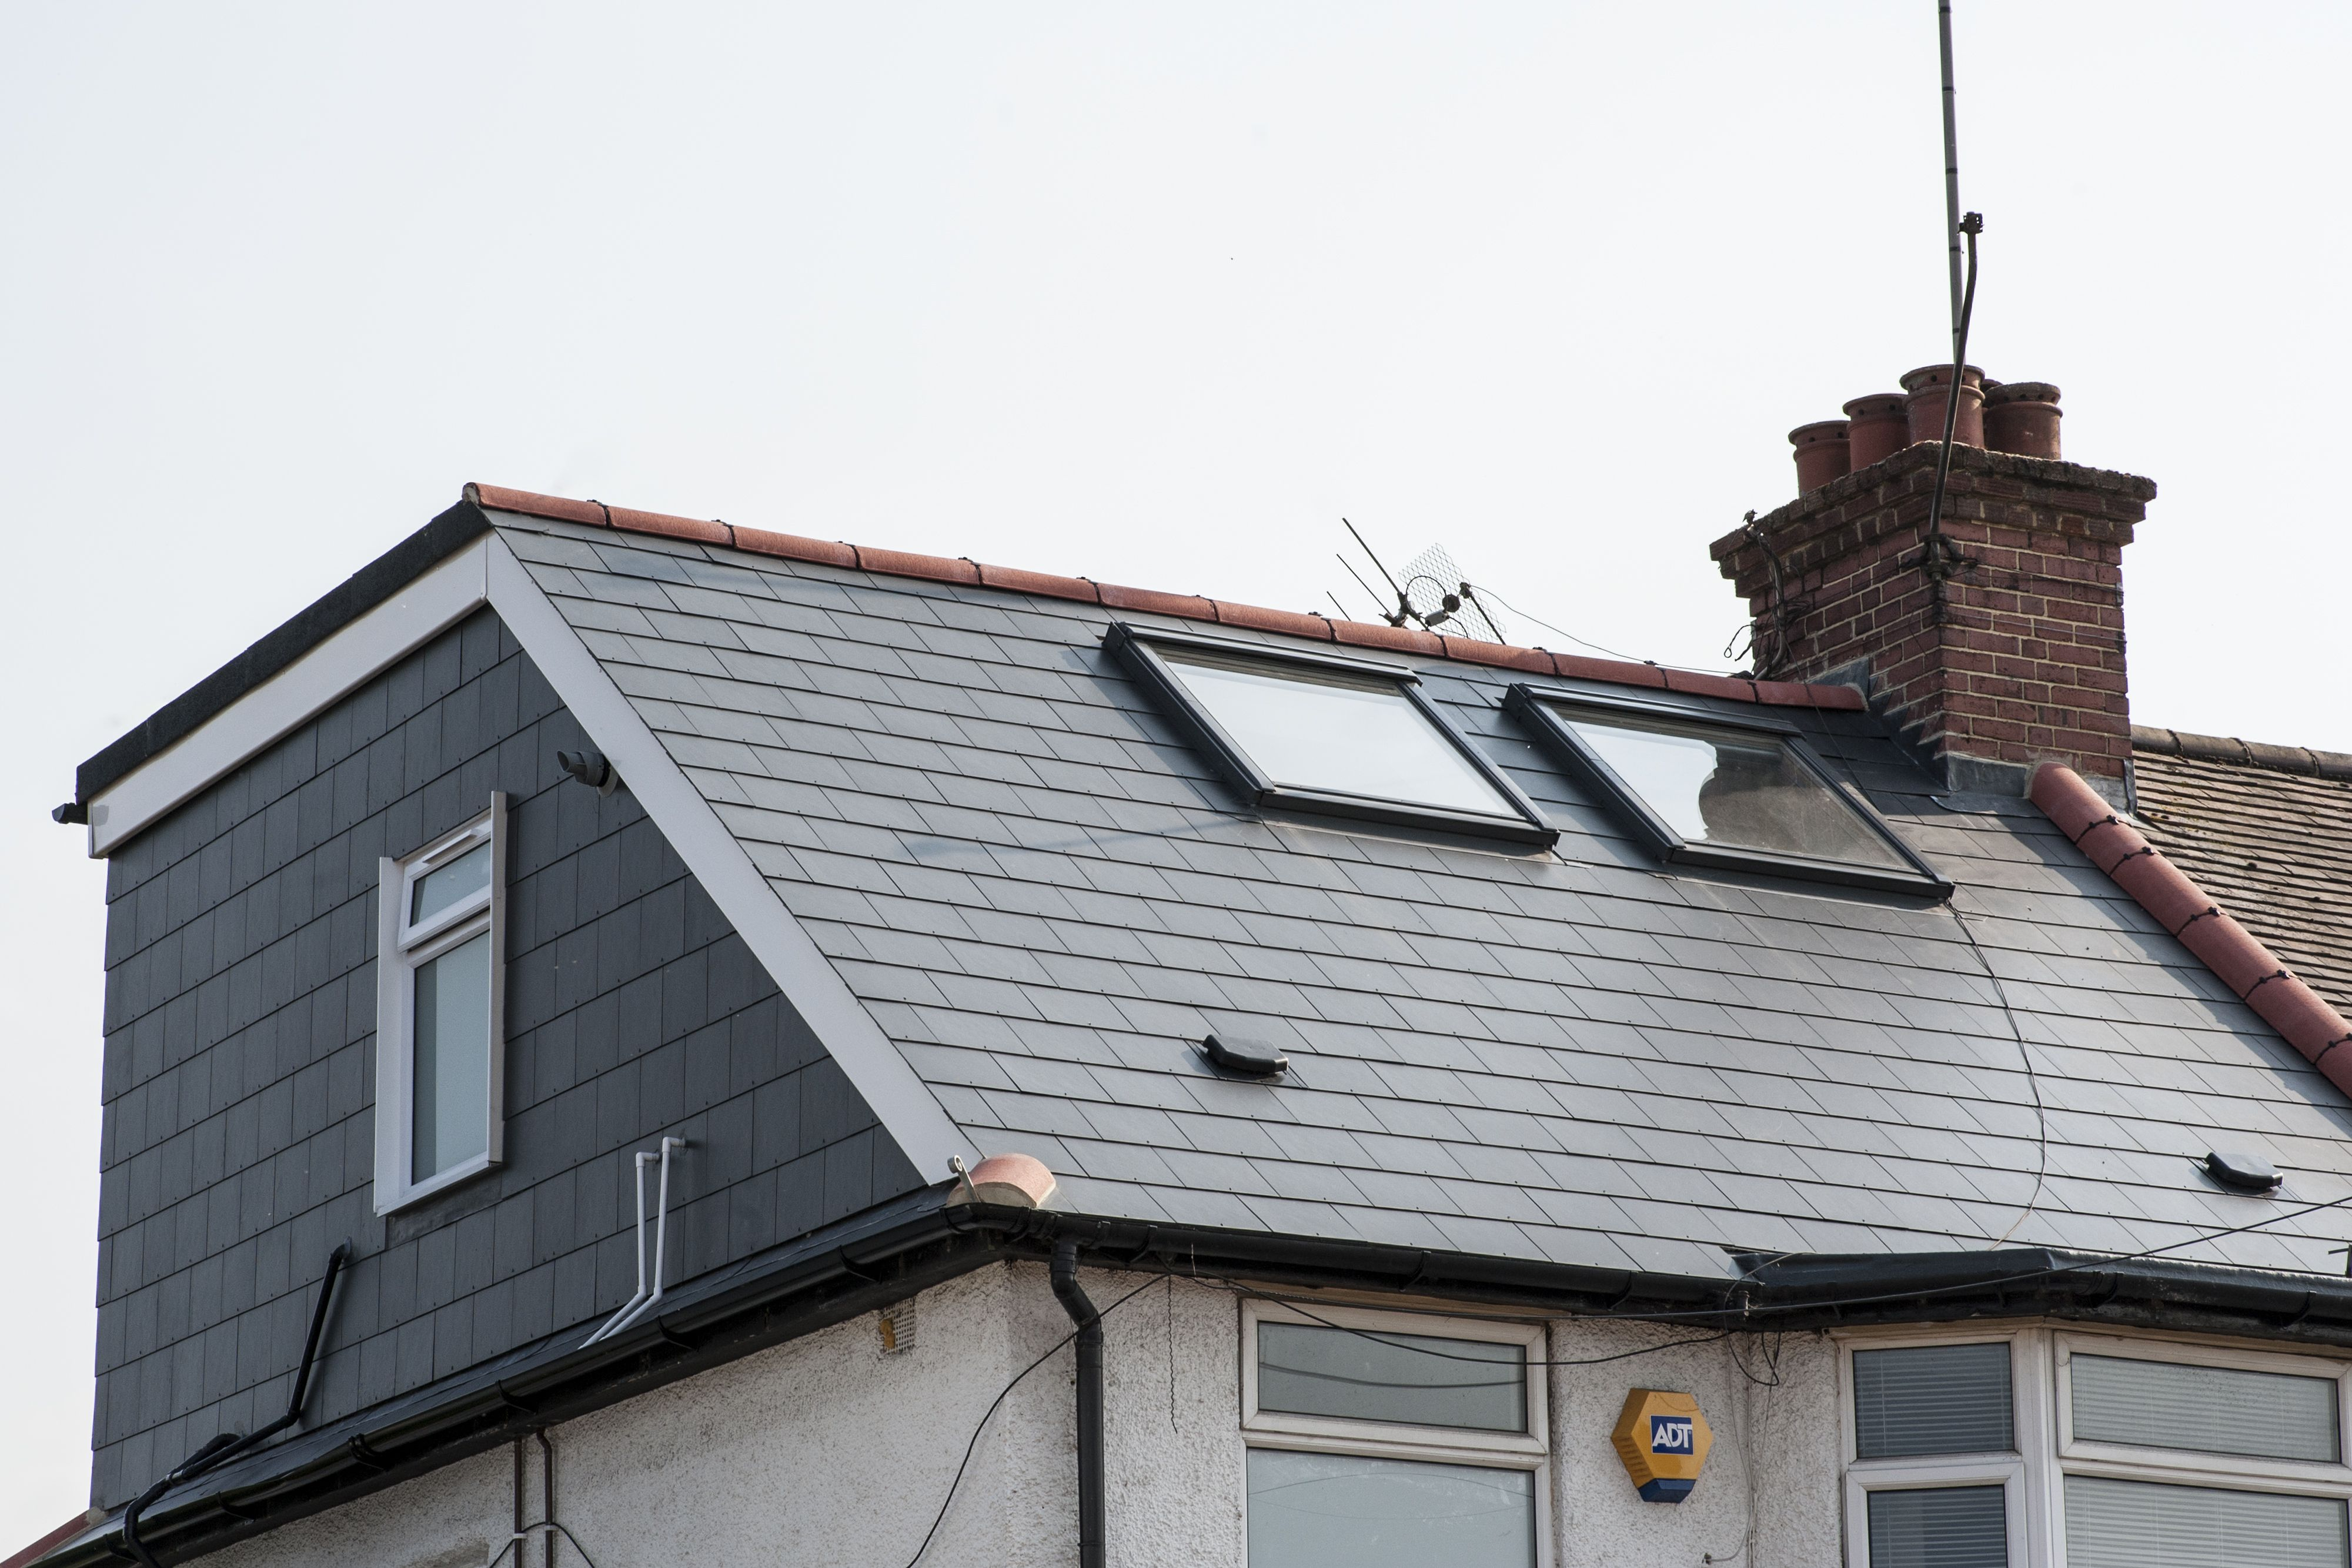 A Hip To Gable Rear Dormer Loft Conversion In North West London This Was A Fantastic Project Loft Conversion Loft Conversion Flat Roof Dormer Loft Conversion